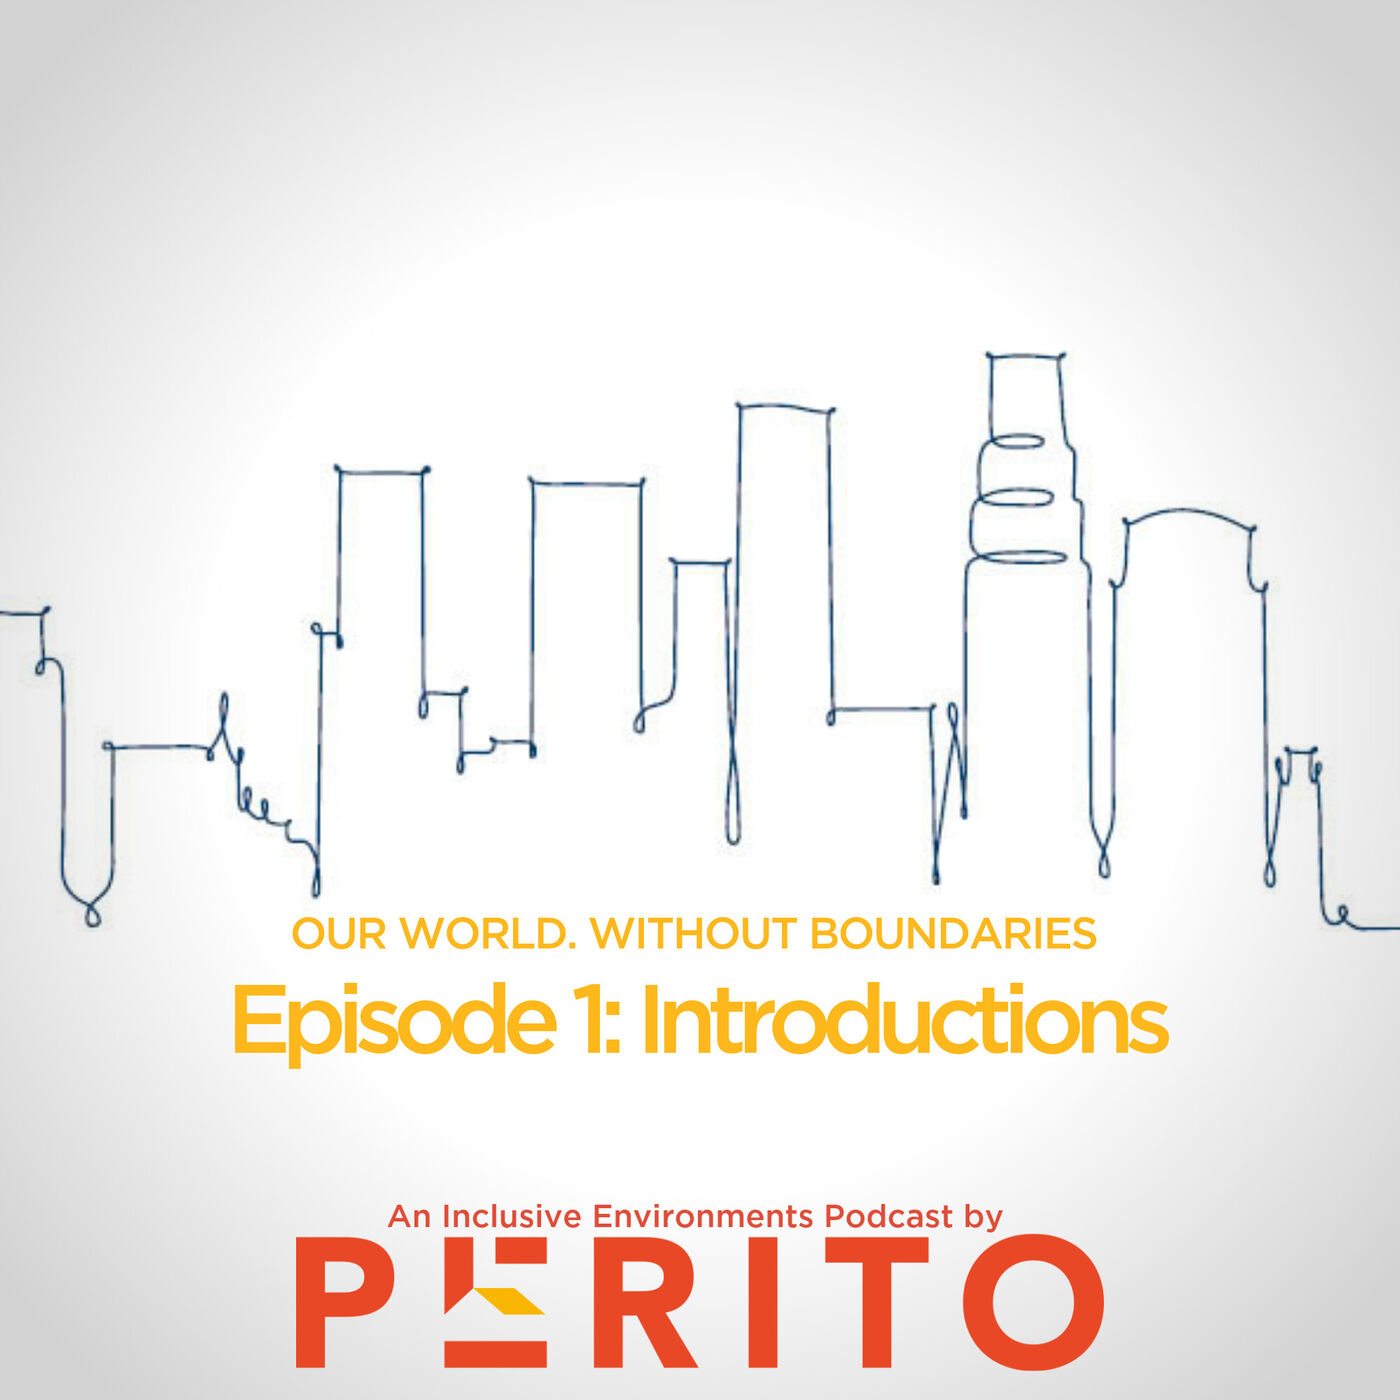 An Introduction To The Perito Podcast